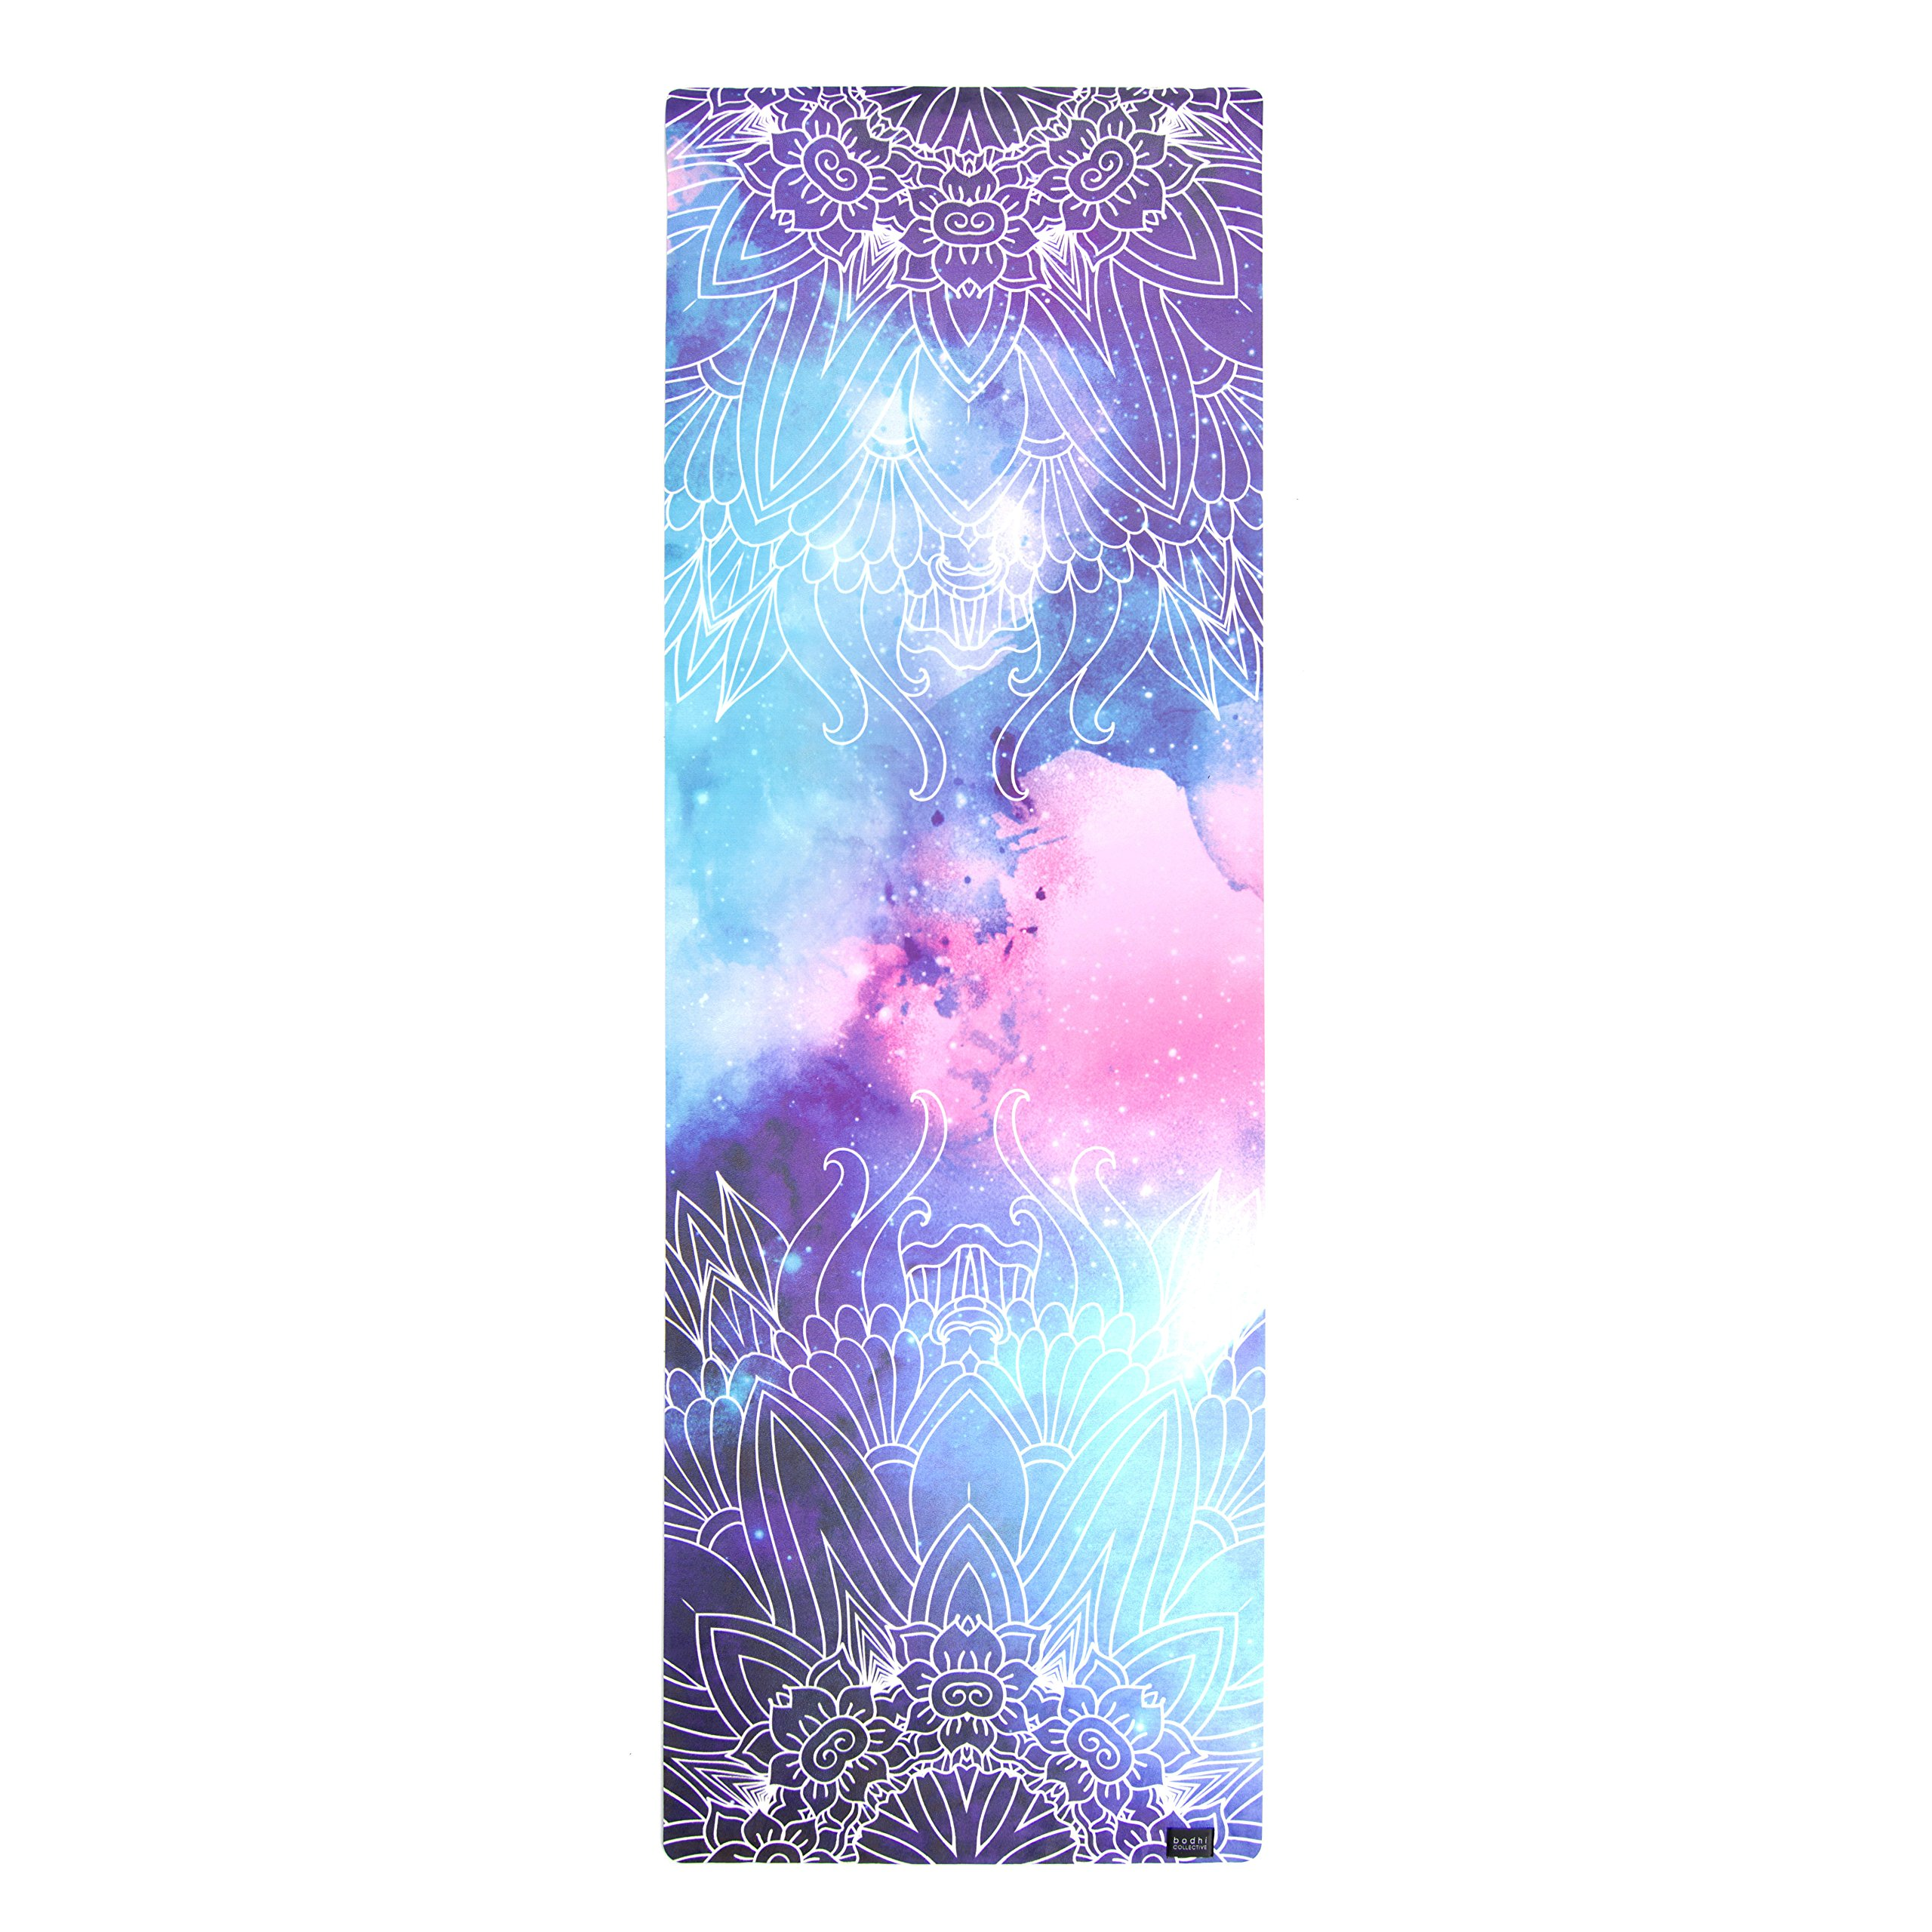 Bodhi Collective MERAKI Luxe Printed Yoga Mat   Premium Eco Friendly Natural Rubber & Soft Suede by Bodhi Collective (Image #3)